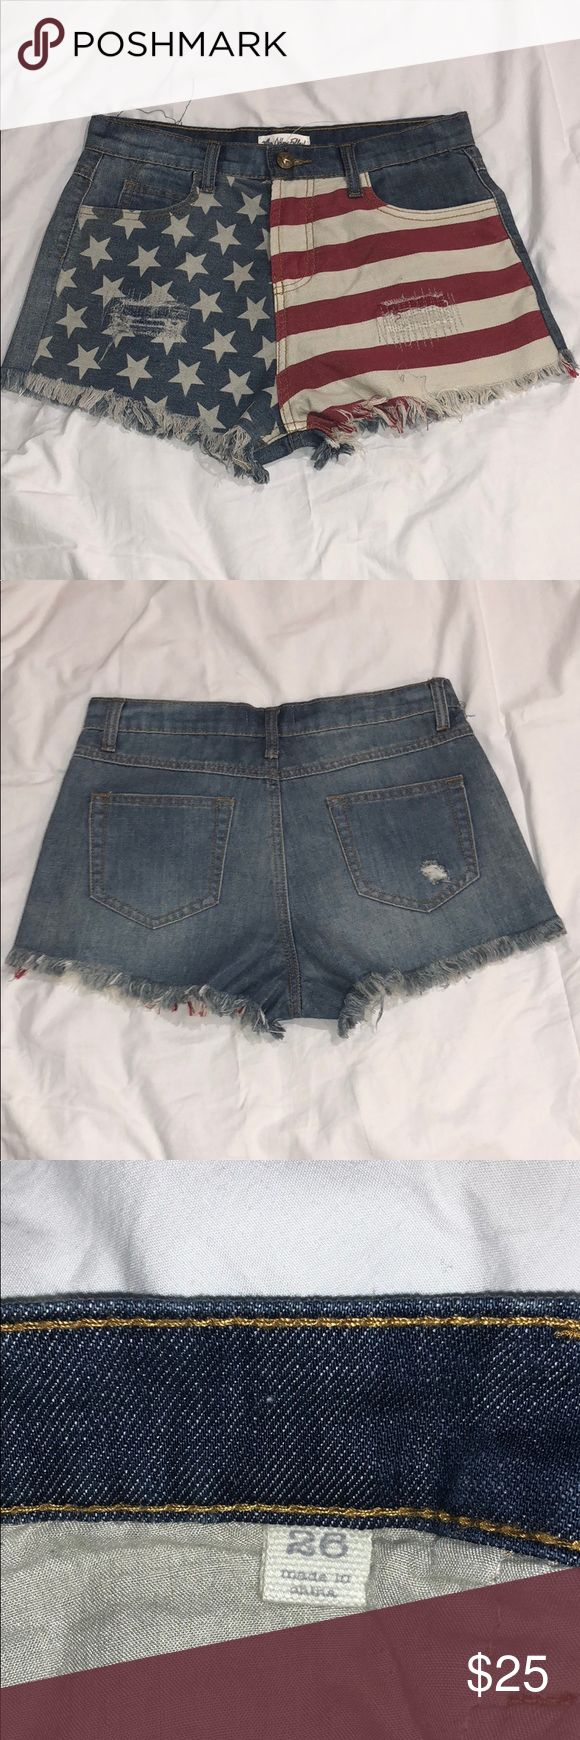 Others Follow American Flag Jean Shorts Perfect for the Forth of July or just to wear on any other weekend. Cut off Daisy Duke jean shorts. BNWOT Others Follow Shorts Jean Shorts